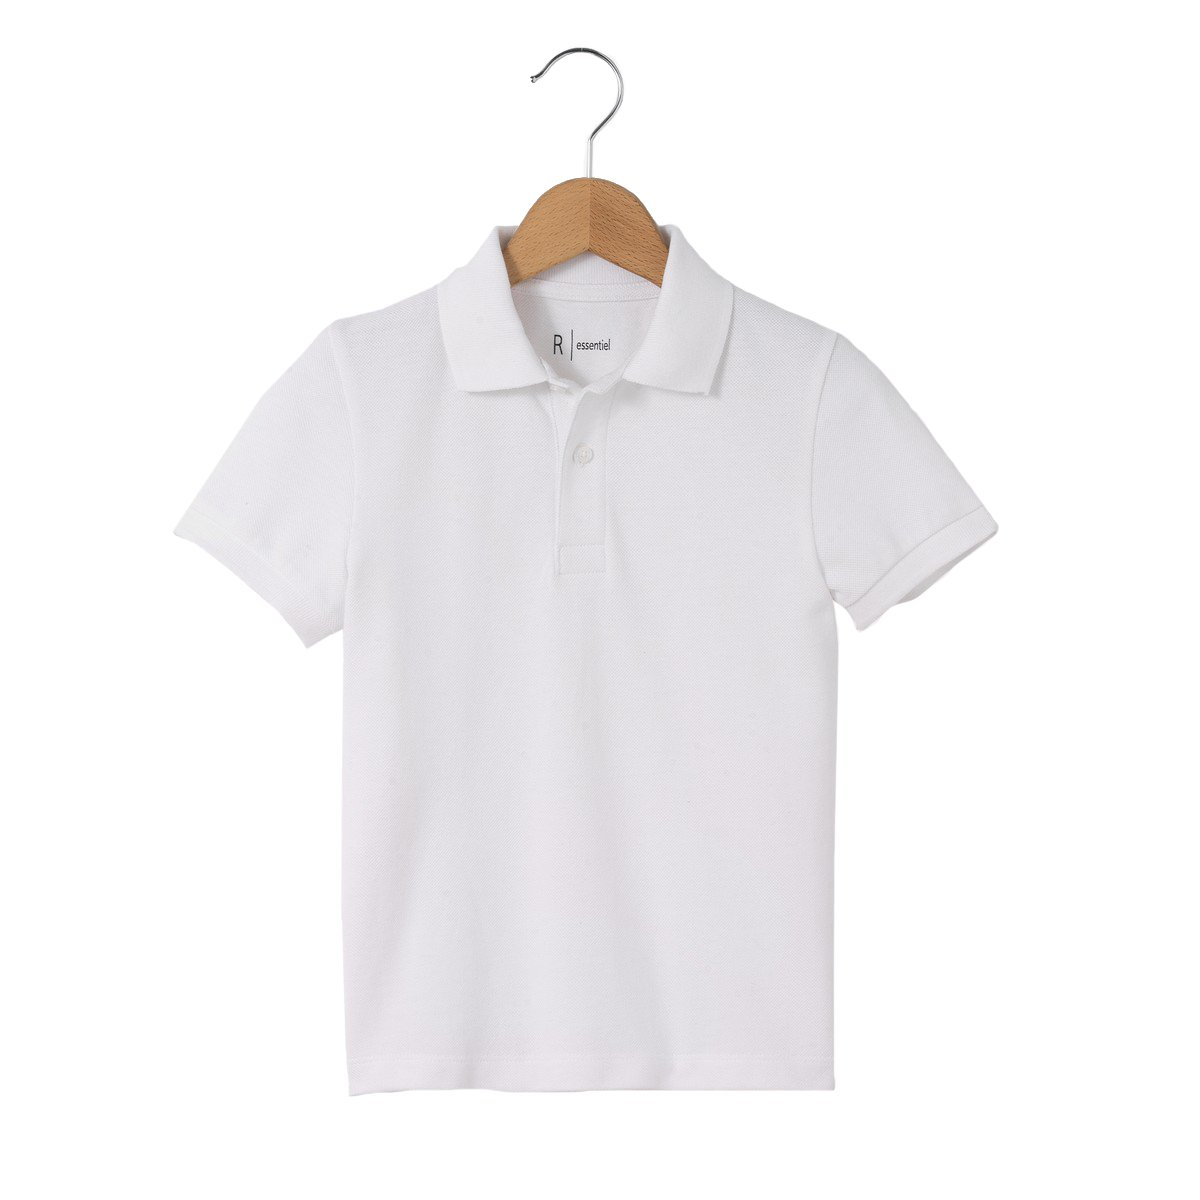 3-12 Years La Redoute Collections Big Boys Pique Cotton Polo Shirt